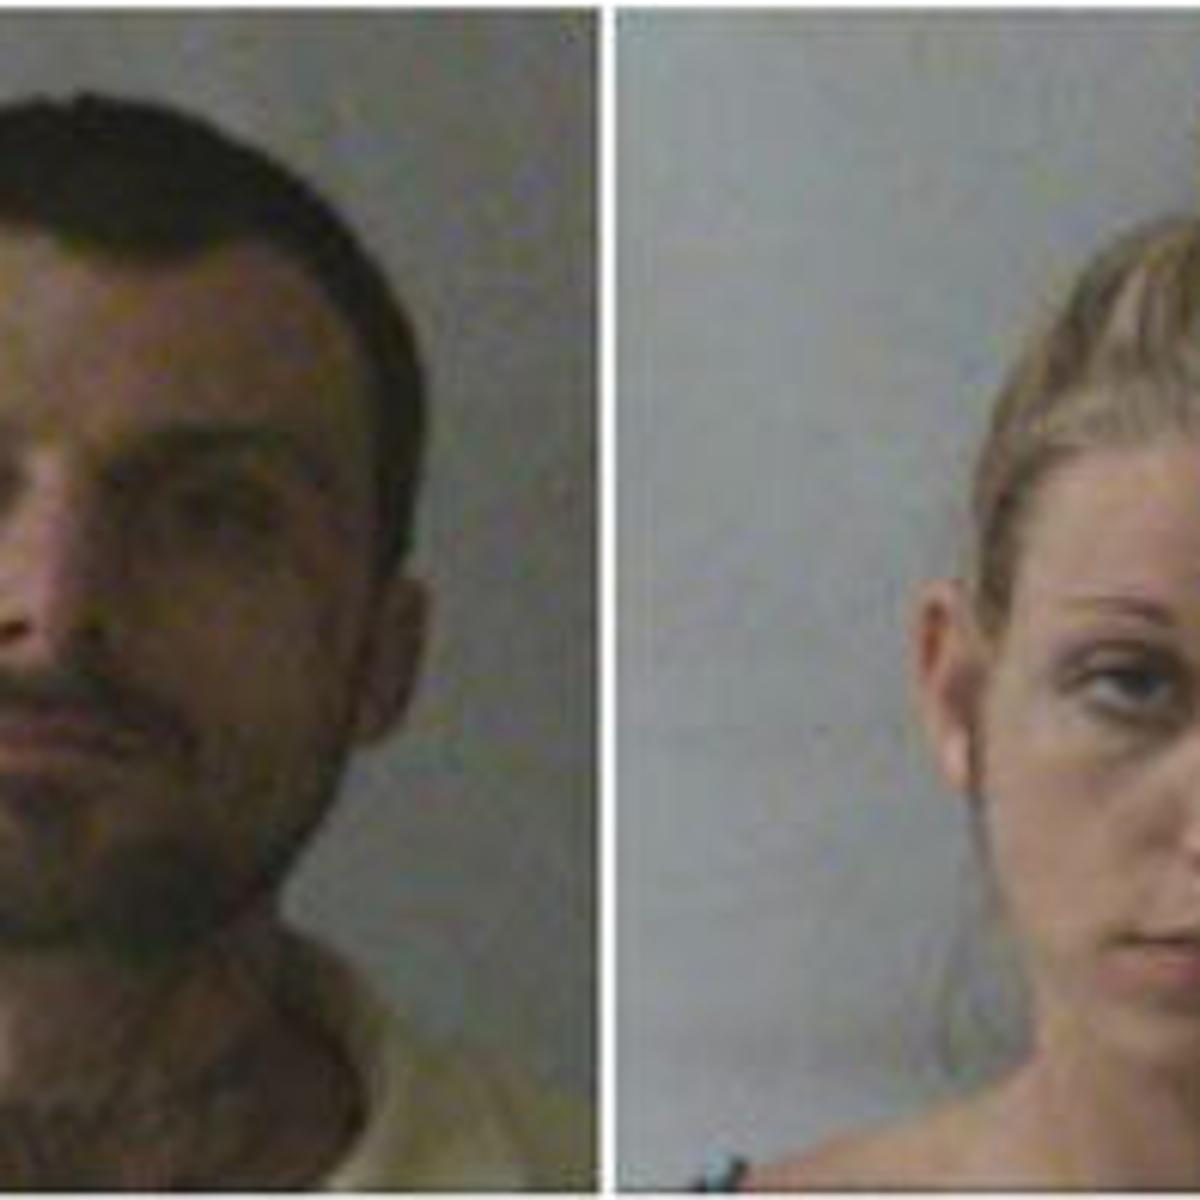 Superior Court: 2 sentenced in October drug bust | Local News